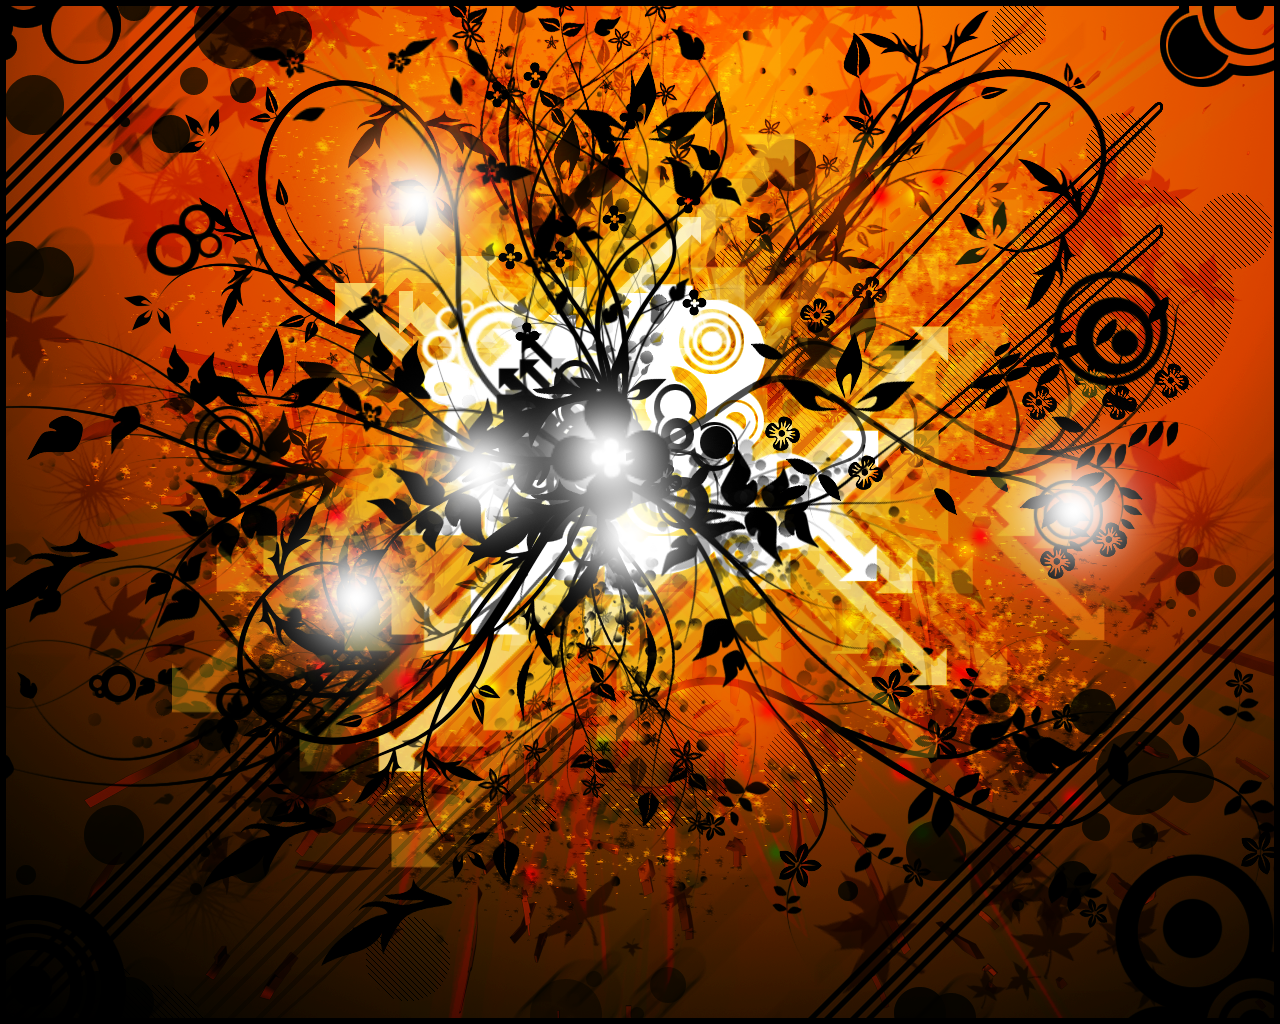 http://2.bp.blogspot.com/_Iq1fkO6qus0/TUvZd2JC_AI/AAAAAAAAAw8/KTftSI2r7jc/s1600/Orange_Abstract_Wallpaper_3220111.png